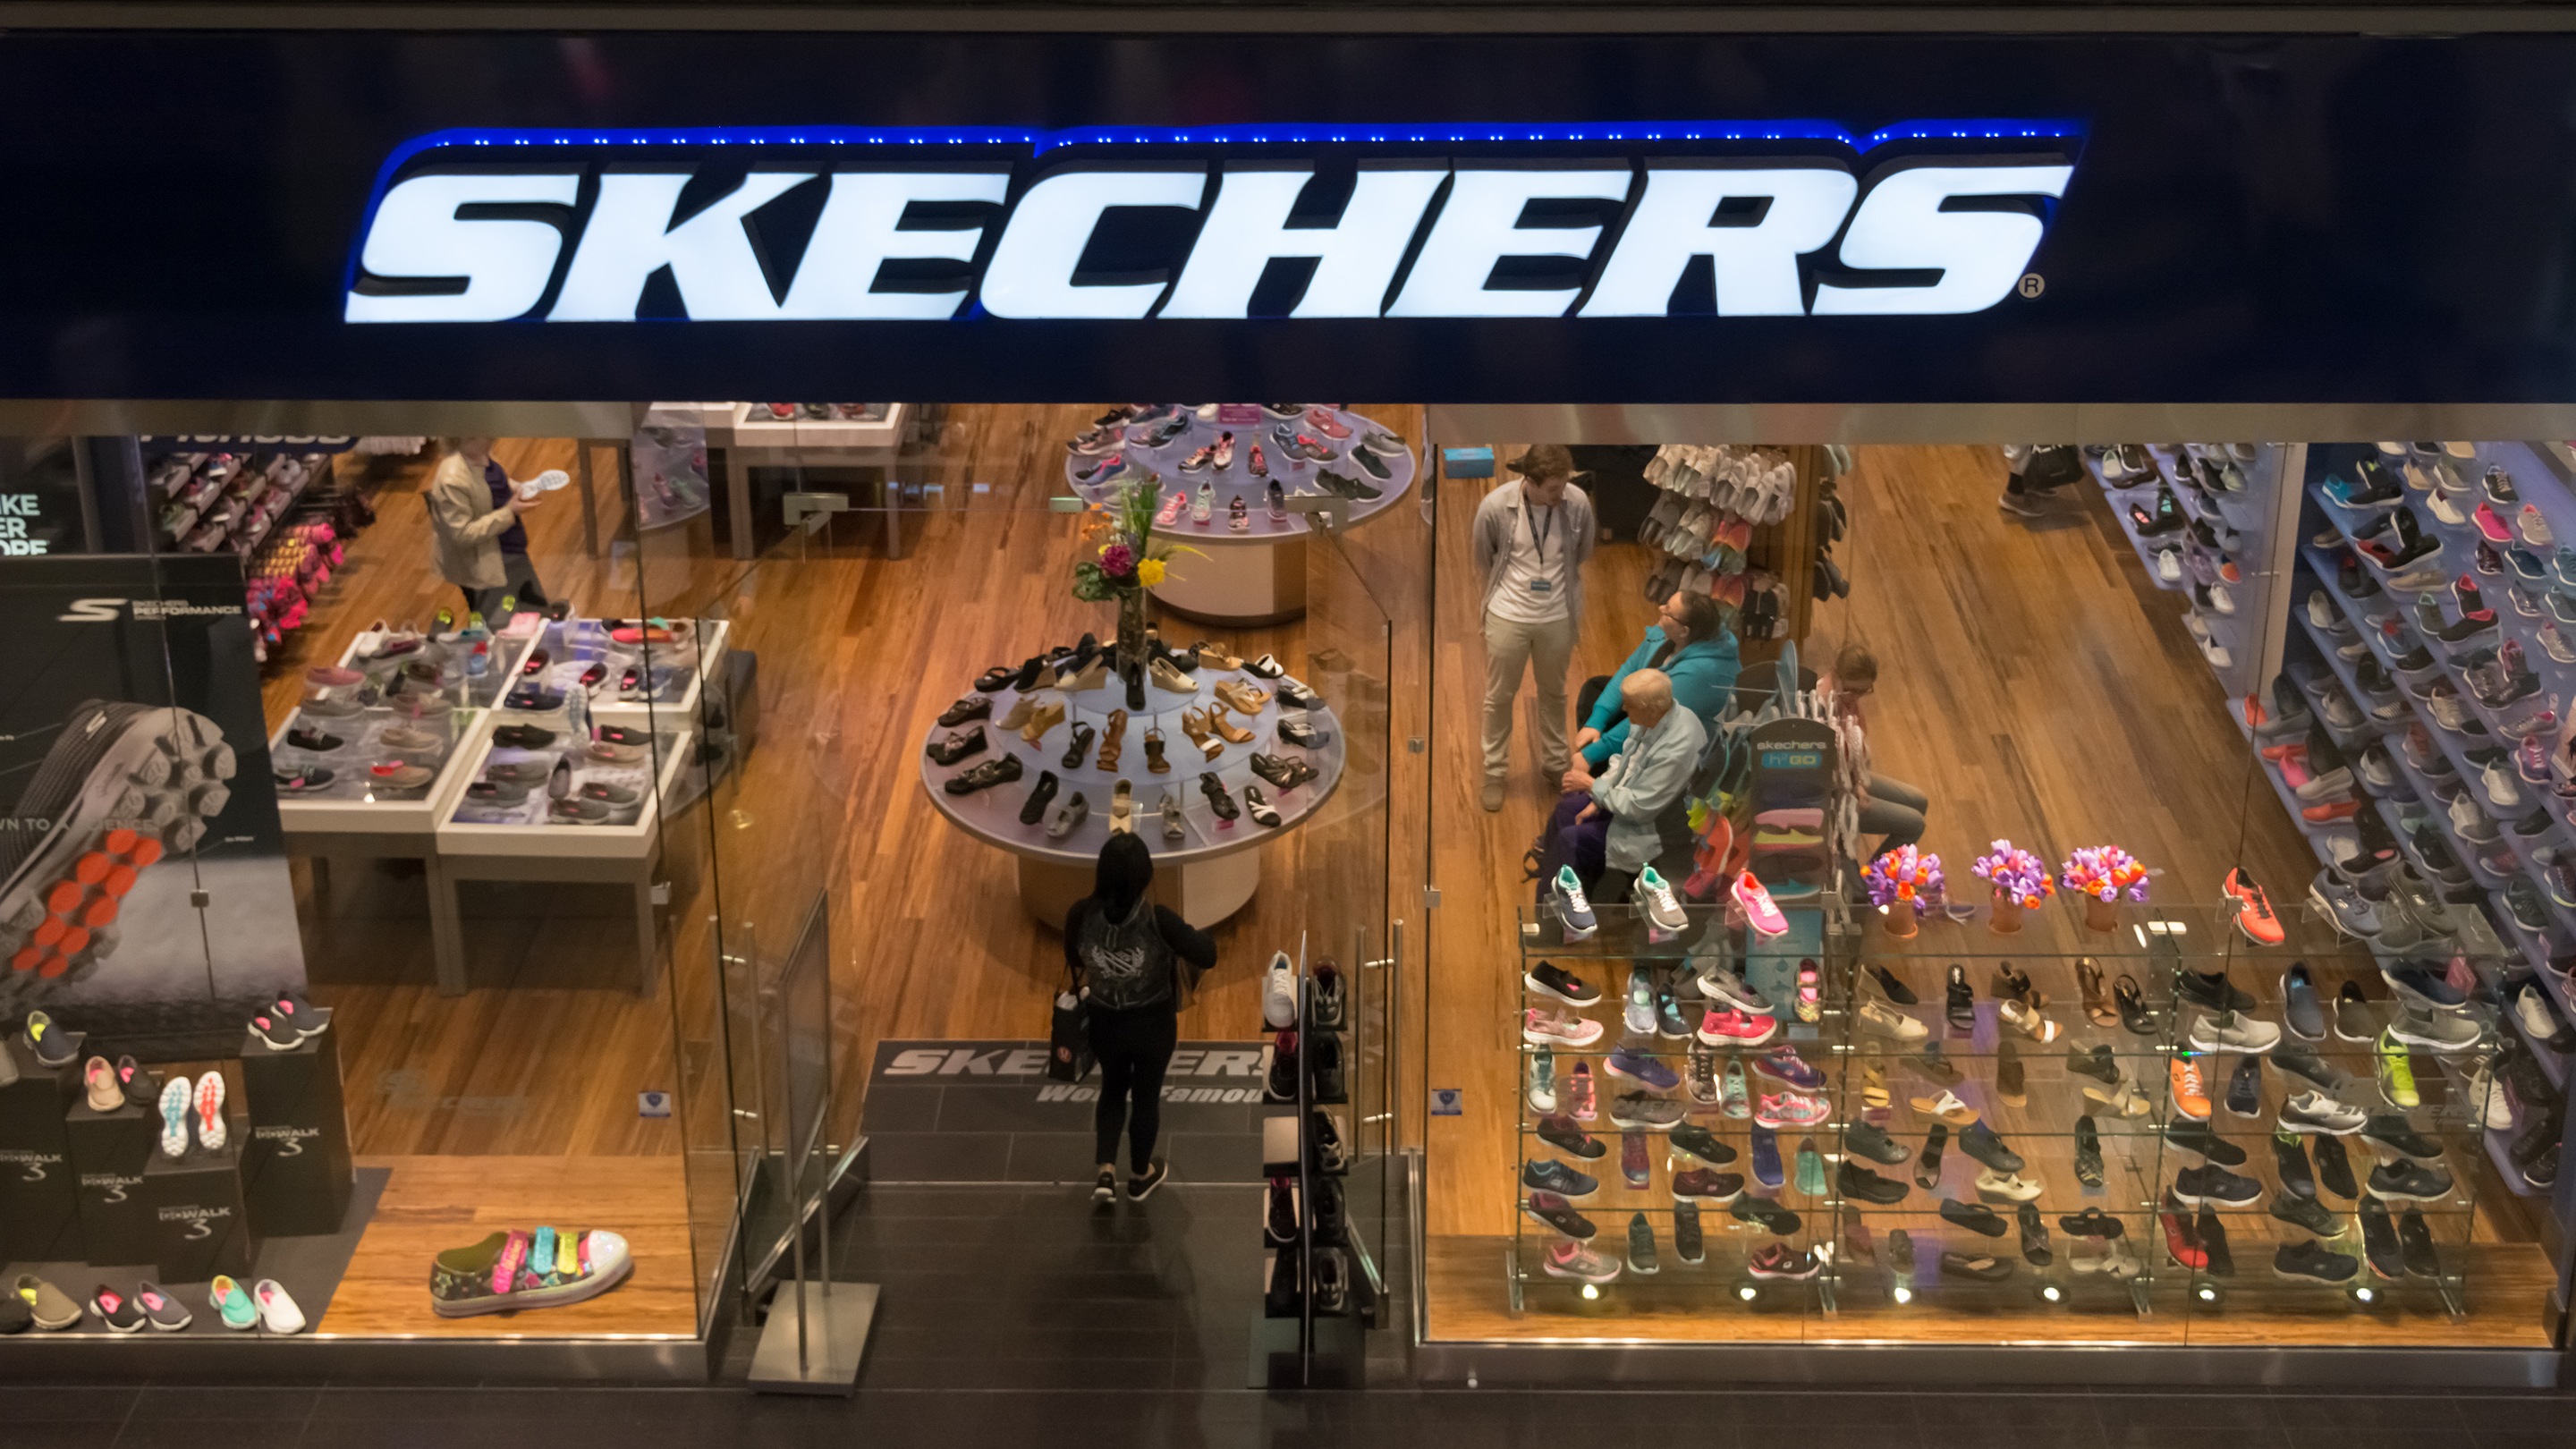 A woman enters Skechers shoe store looking for a good deal